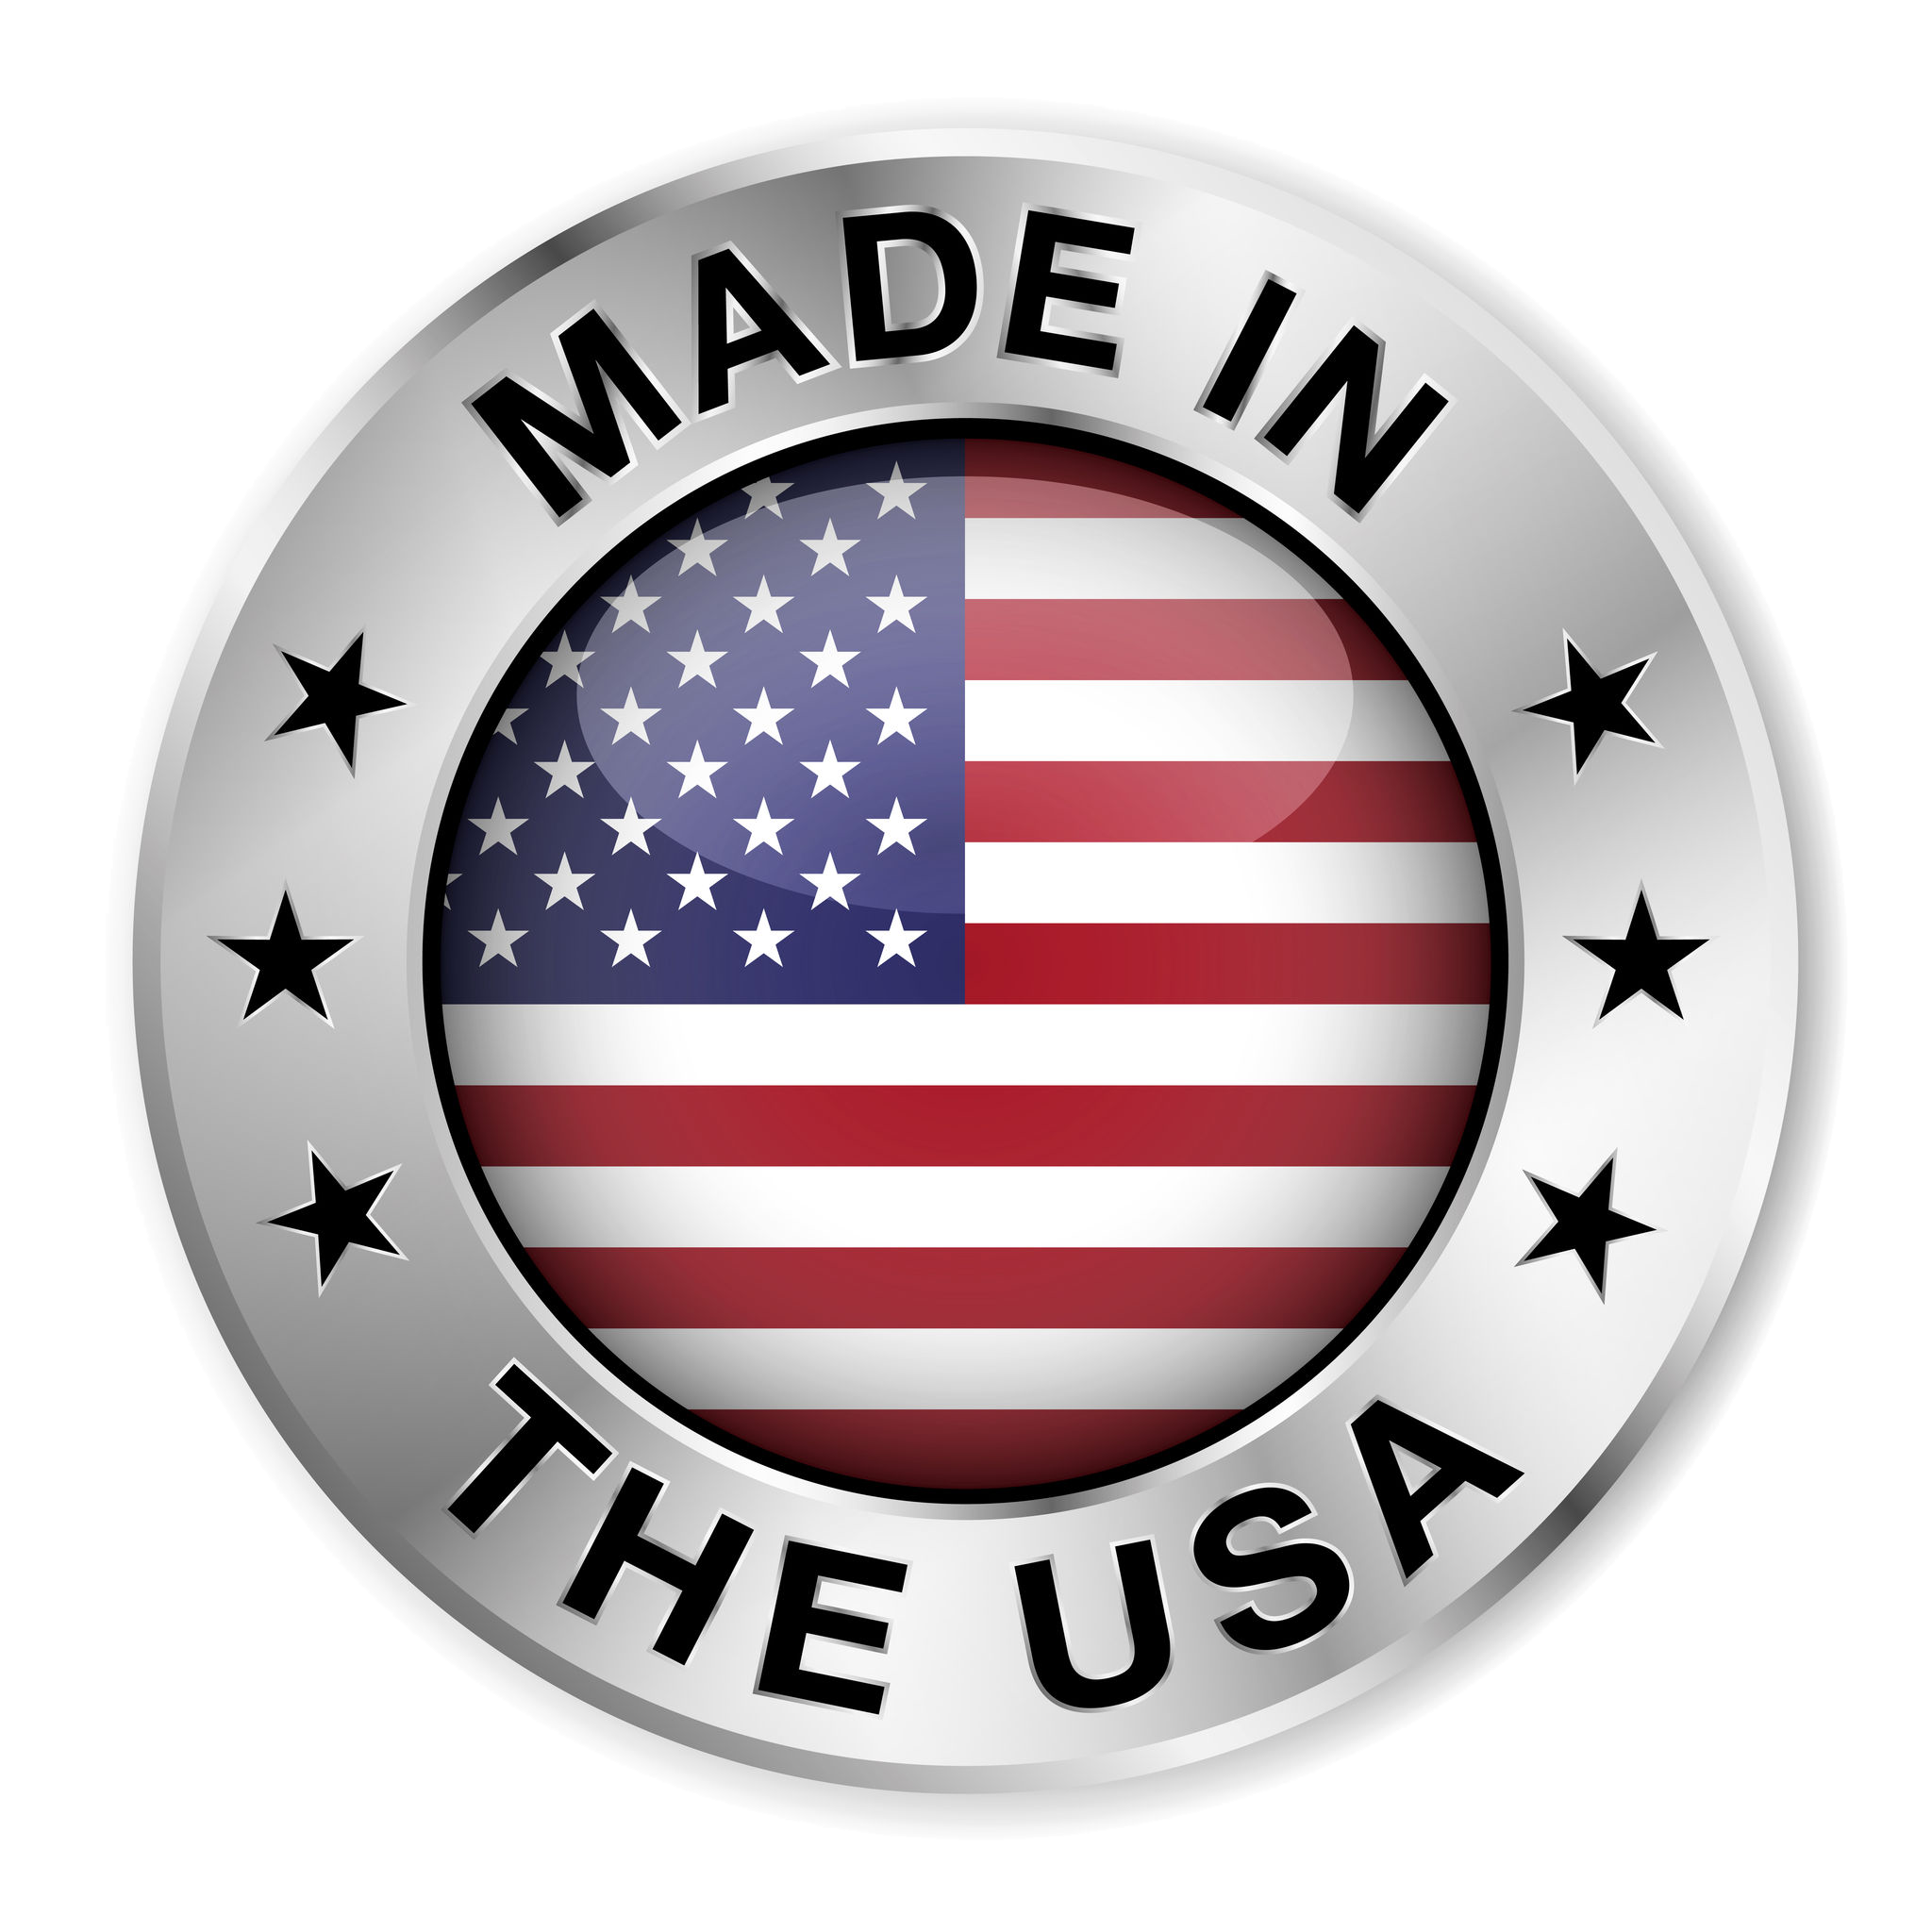 made-usa2.png